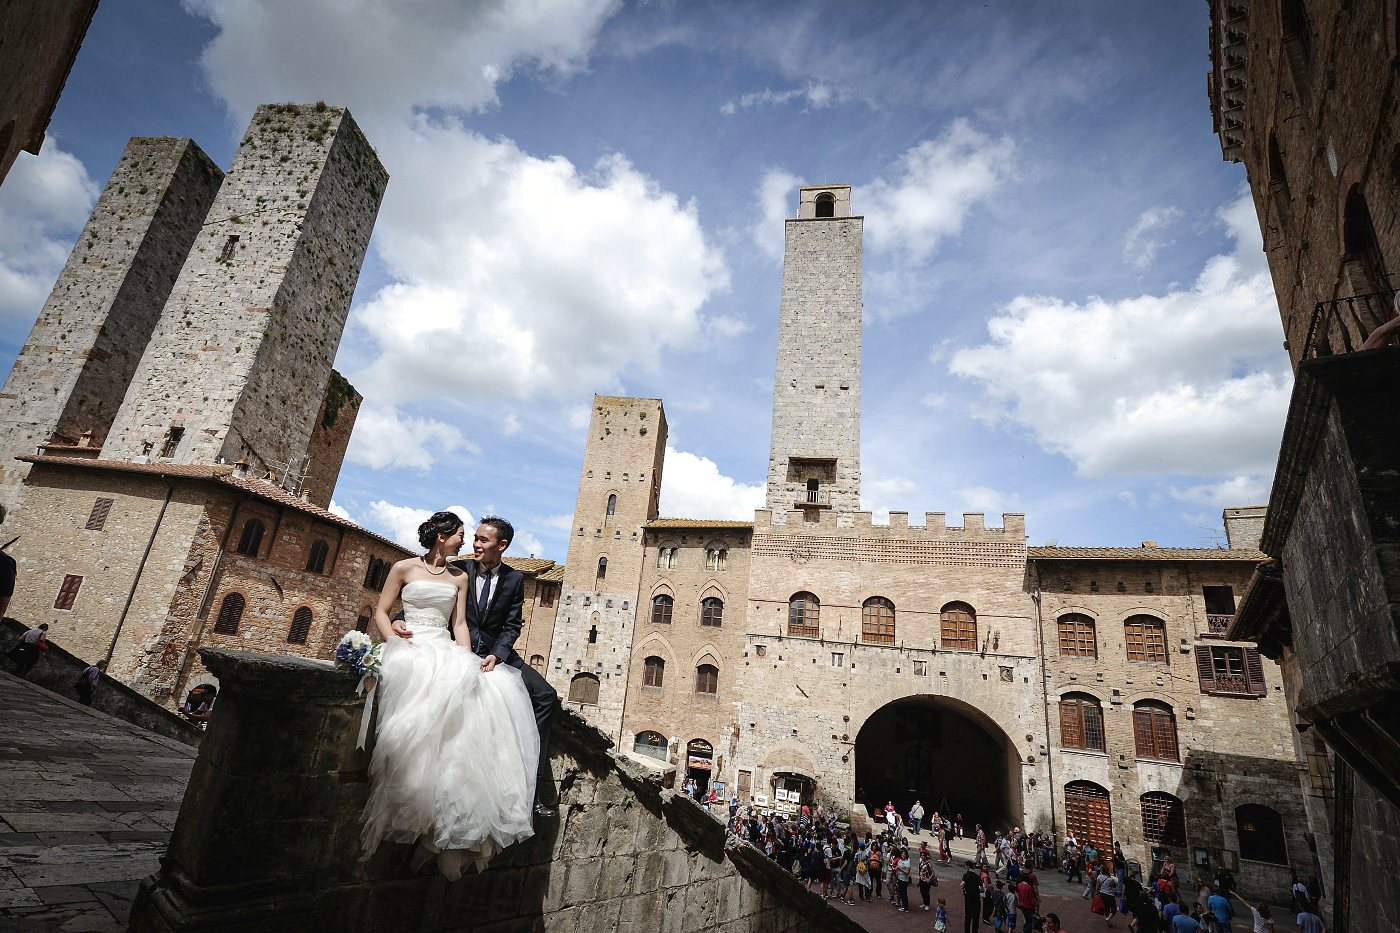 wedding photo tuscany_17.jpg